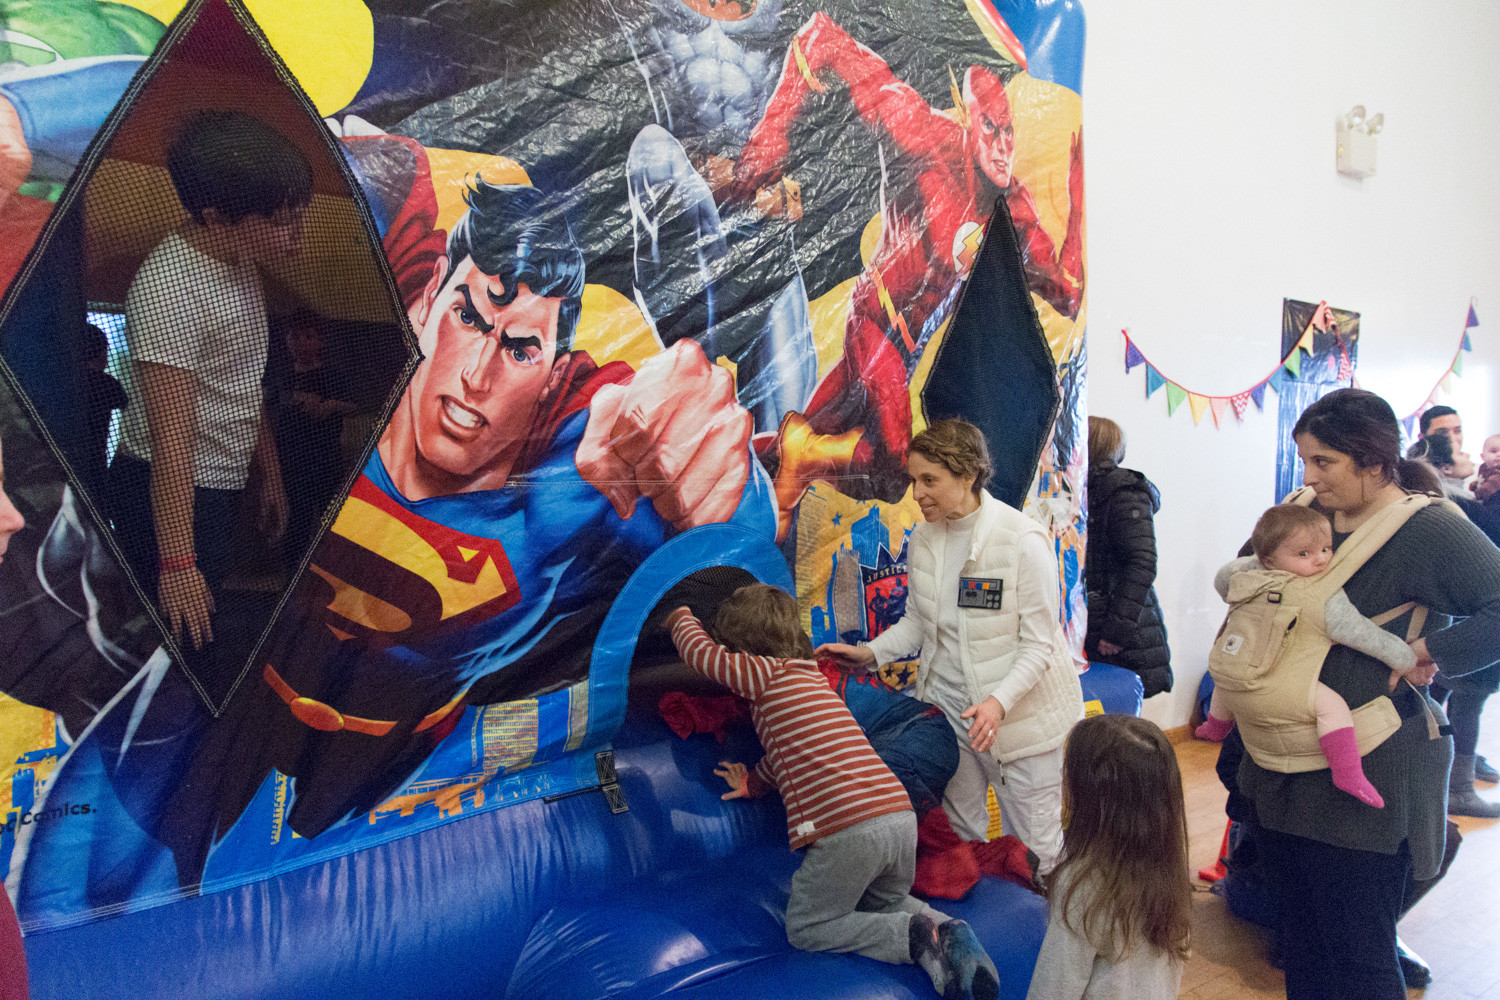 Inflatable bounce houses were a popular attraction amongst the kids during the Riverdale Temple's Purim carnival.